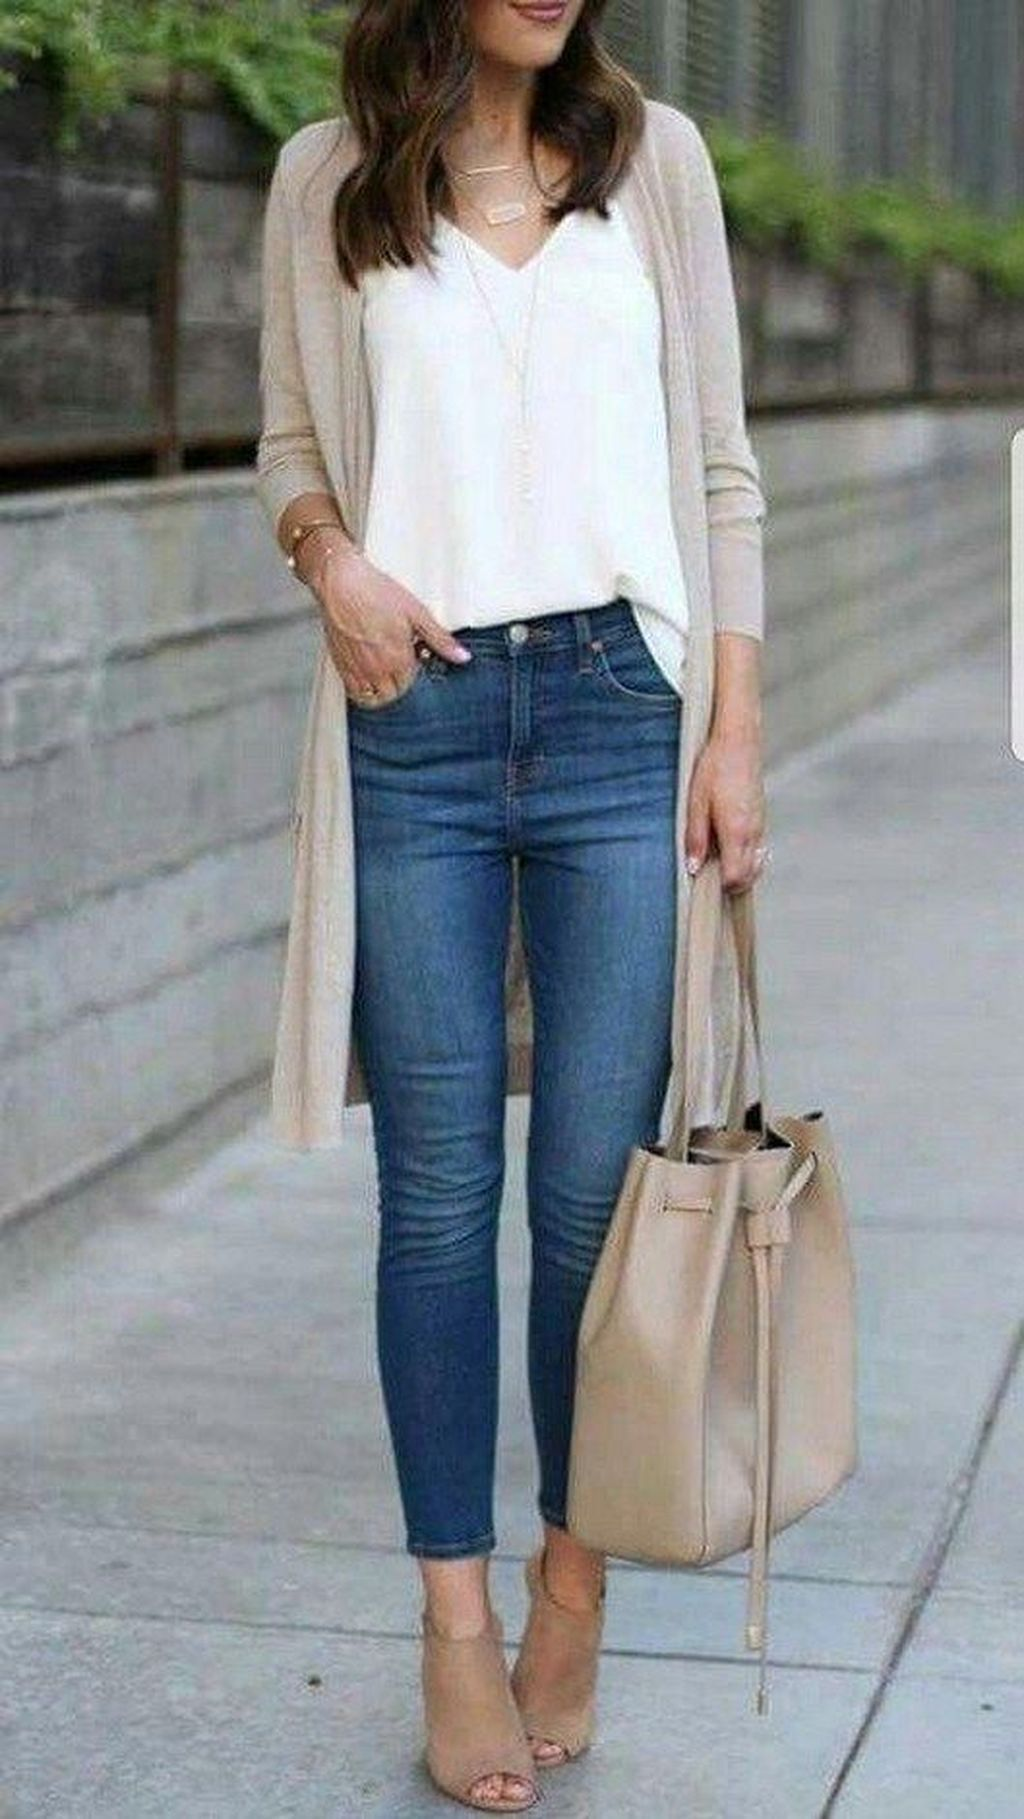 Inspiring Women Spring Jeans Outfit Ideas For Work 06 1